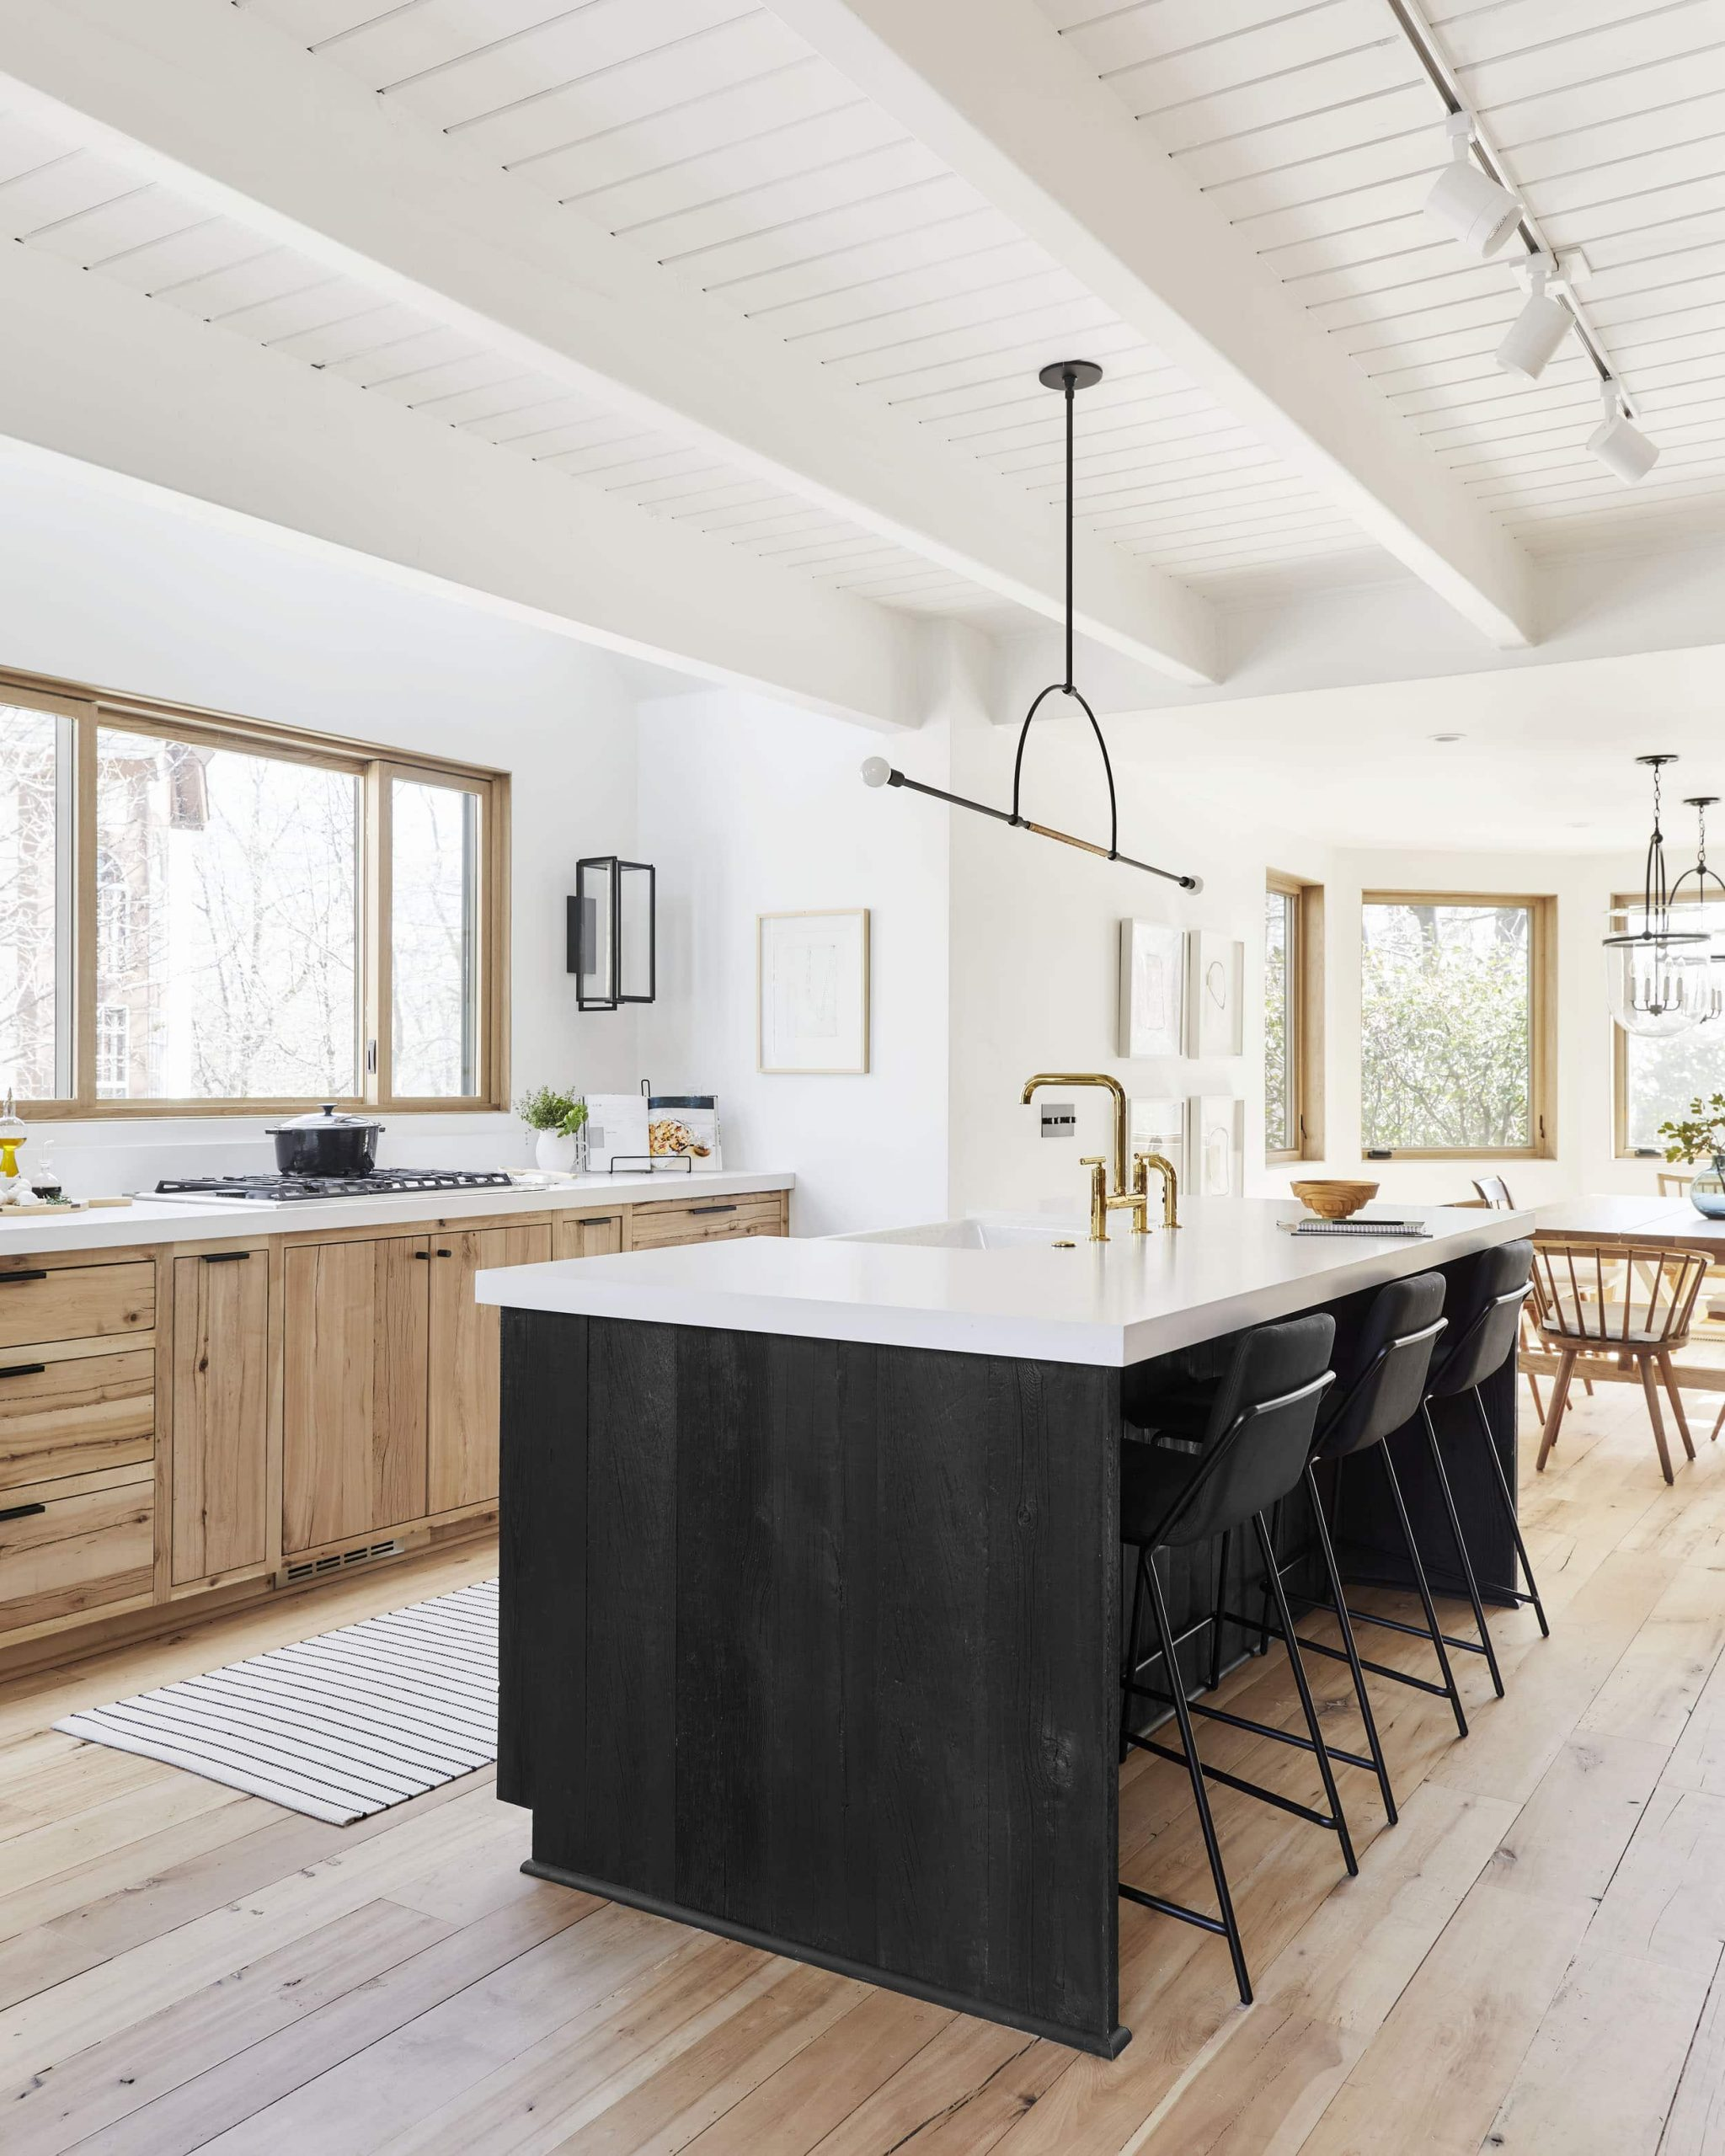 black and wood Scandinavian kitchen with bright windows and wood accents